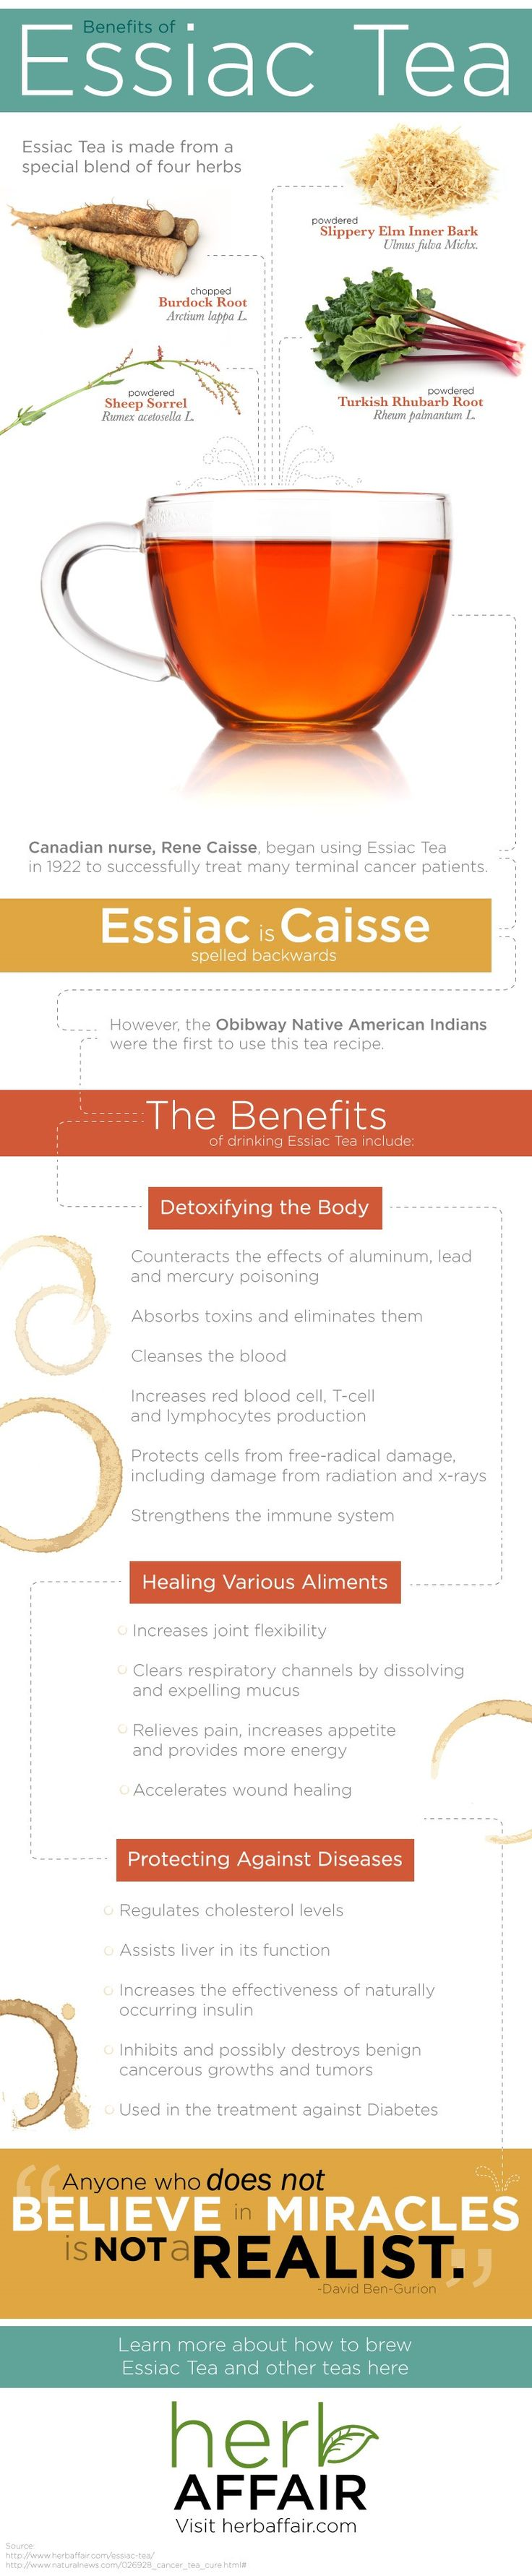 *The Benefits of Essiac Tea*   http://www.herbaffair.com/blog/the-benefits-of-essiac-tea/    #Tea #Infographic #HealthTips